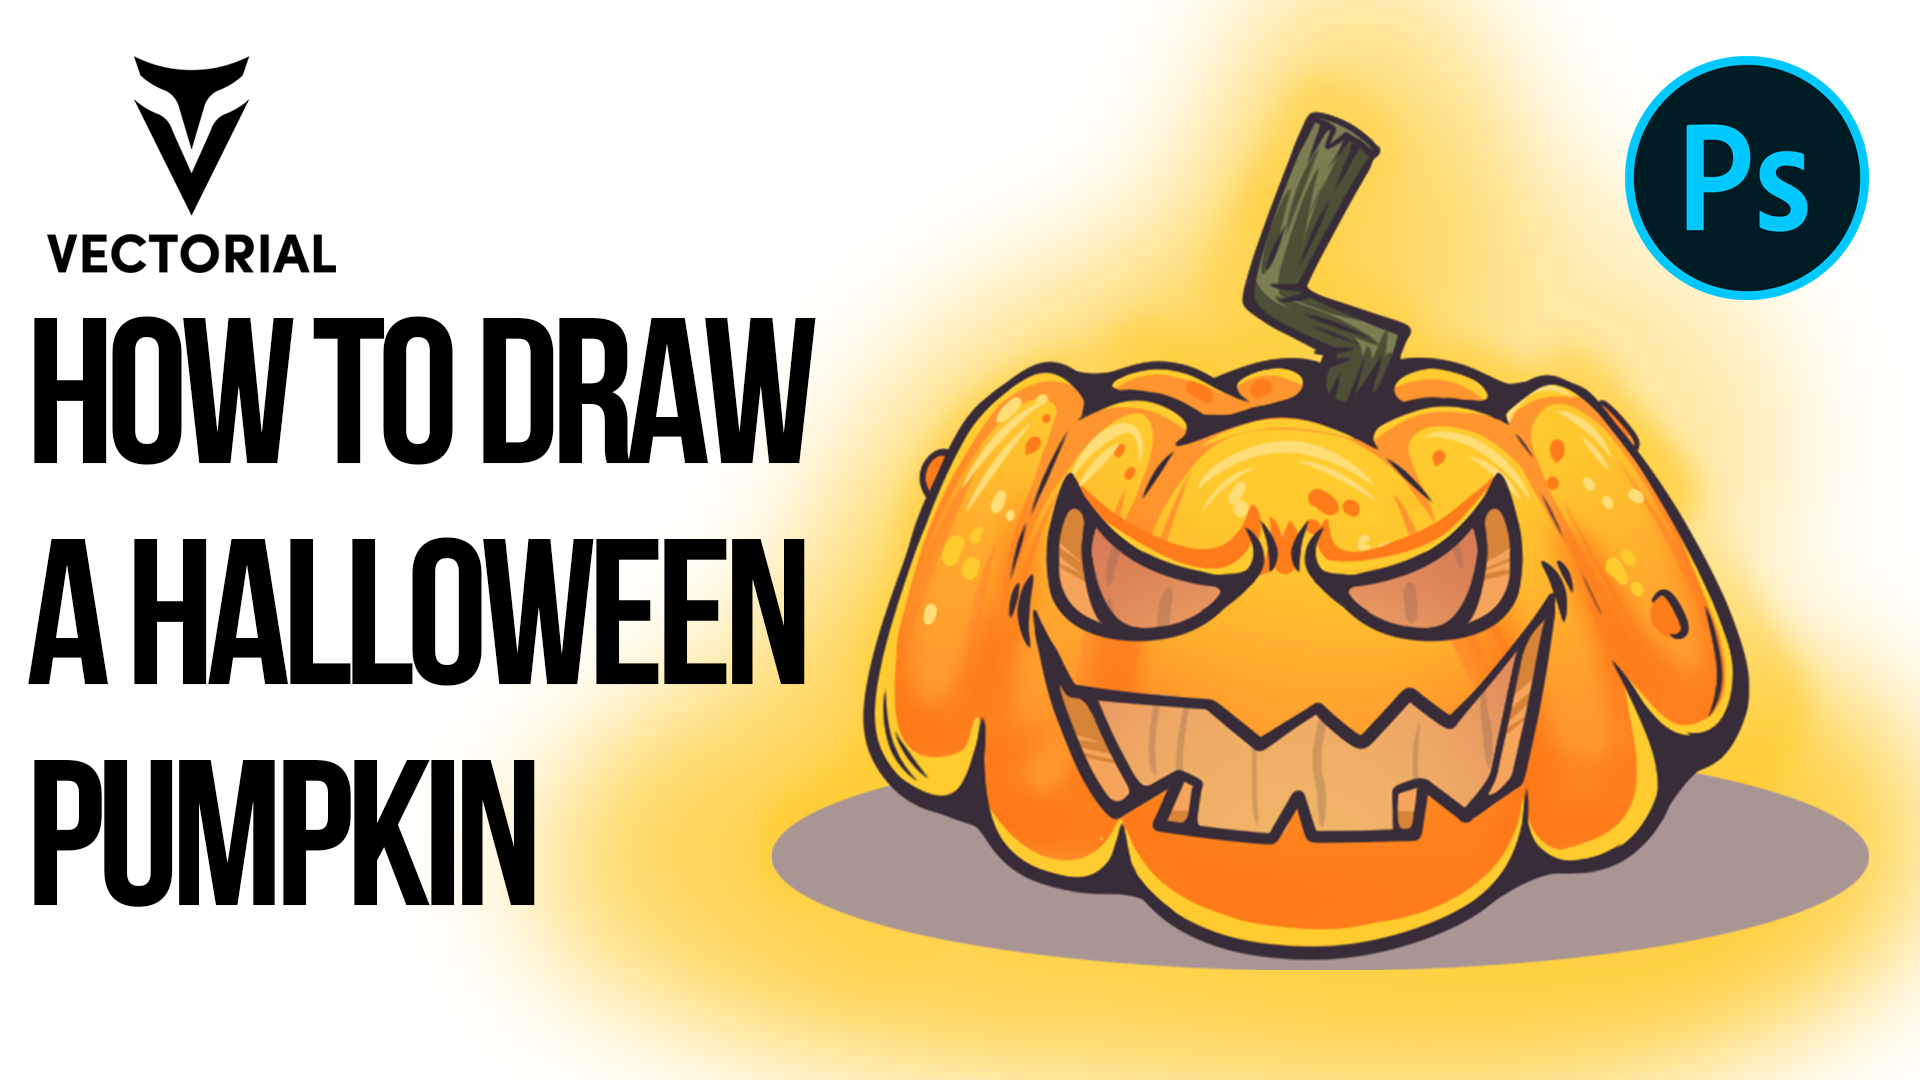 How to draw a Halloween Pumpkin in Adobe Photoshop with lazy nezumi